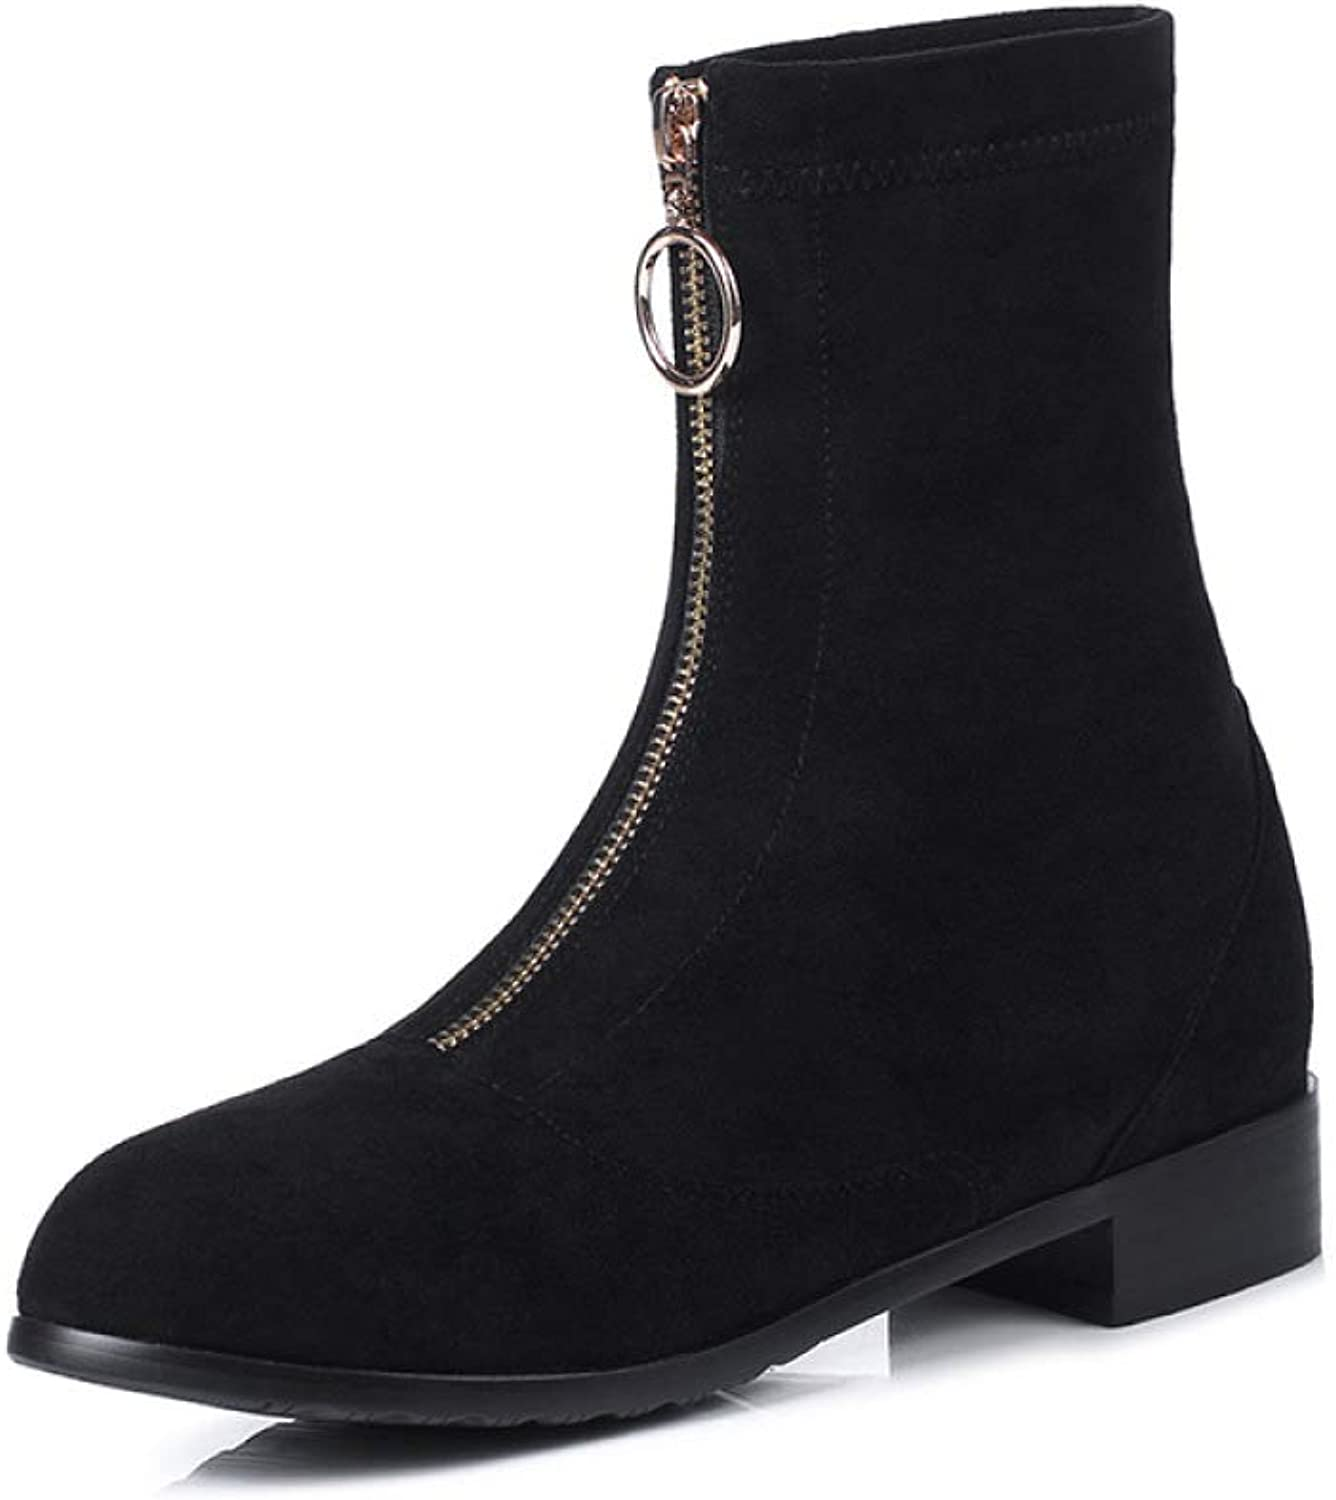 Women Suede Martin Boots 2018 Autumn Winter New Low-Heel Zipper Knight Boots Size 33-43 Ankle Boots